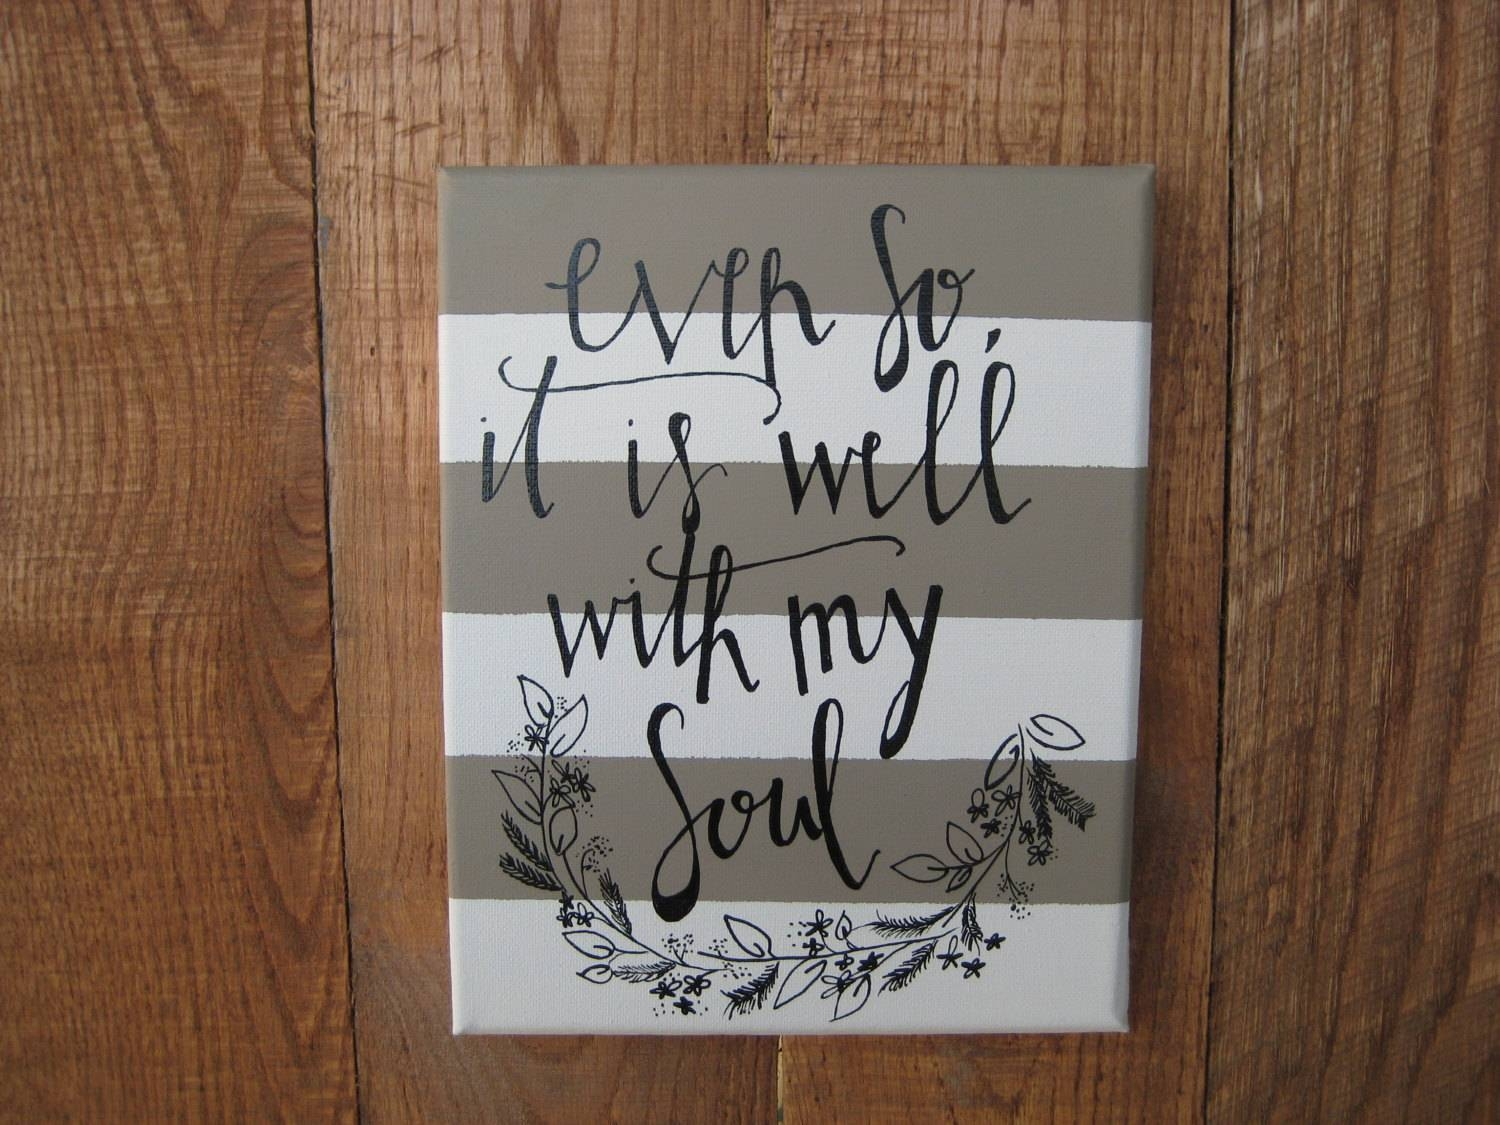 Wall Art Designs: Christian Canvas Wall Art On Your Home And Throughout Most Current Christian Canvas Wall Art (View 18 of 20)